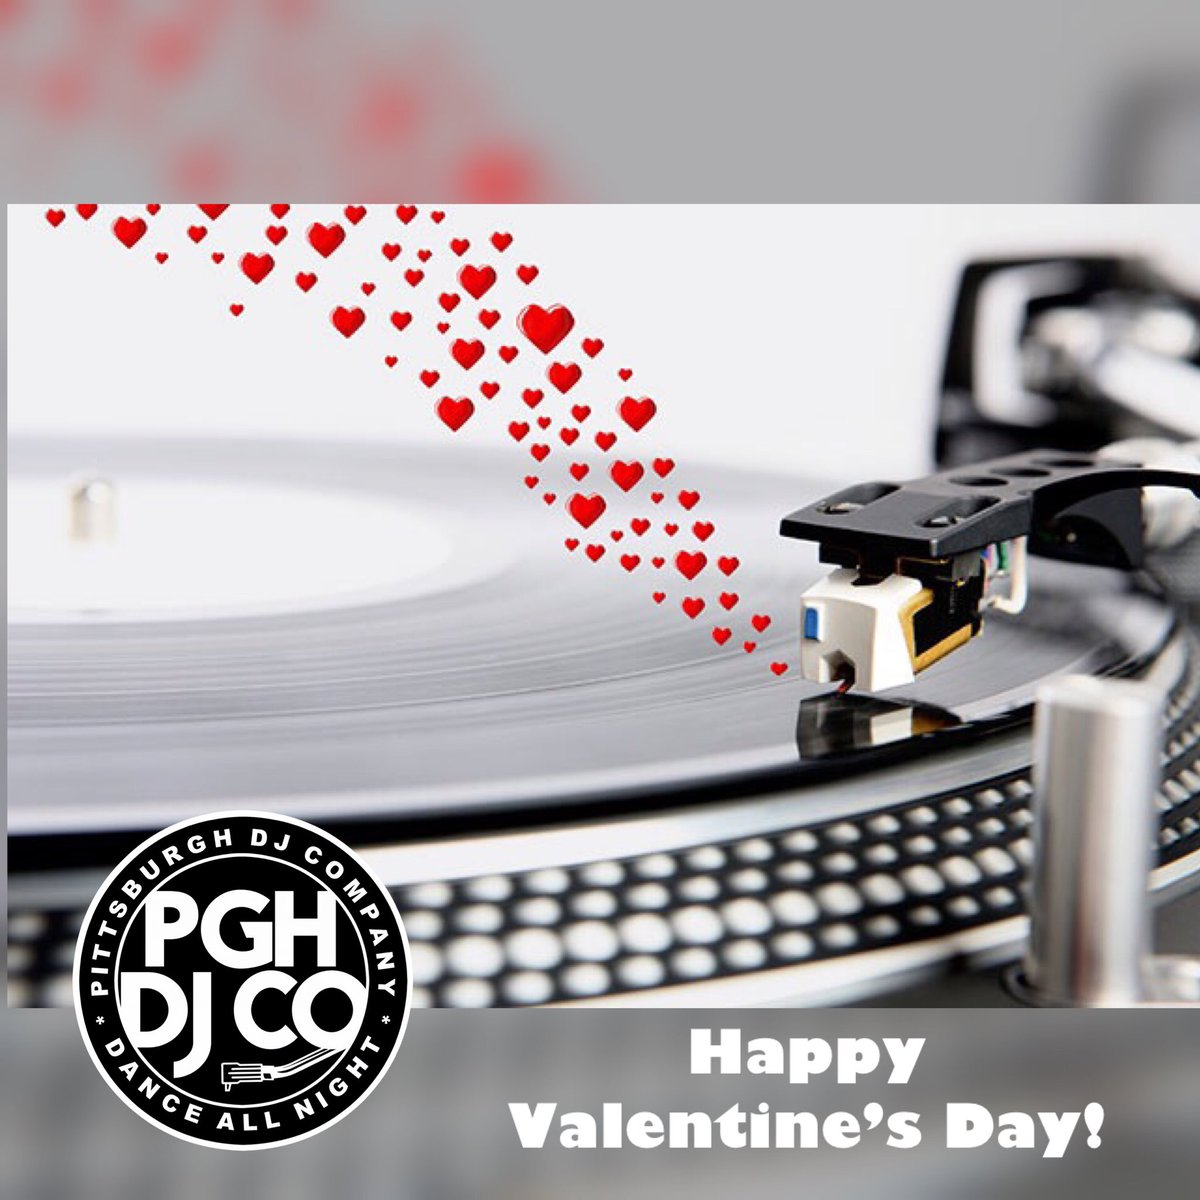 Happy Valentine's Day from Pittsburgh DJ Company! May this day be filled with love! #PittsburghDJ #PittsburghWeddingDJ #PittsburghEventDJ #valentinesday #HappyValentineDaypic.twitter.com/BFiuLwEkjY